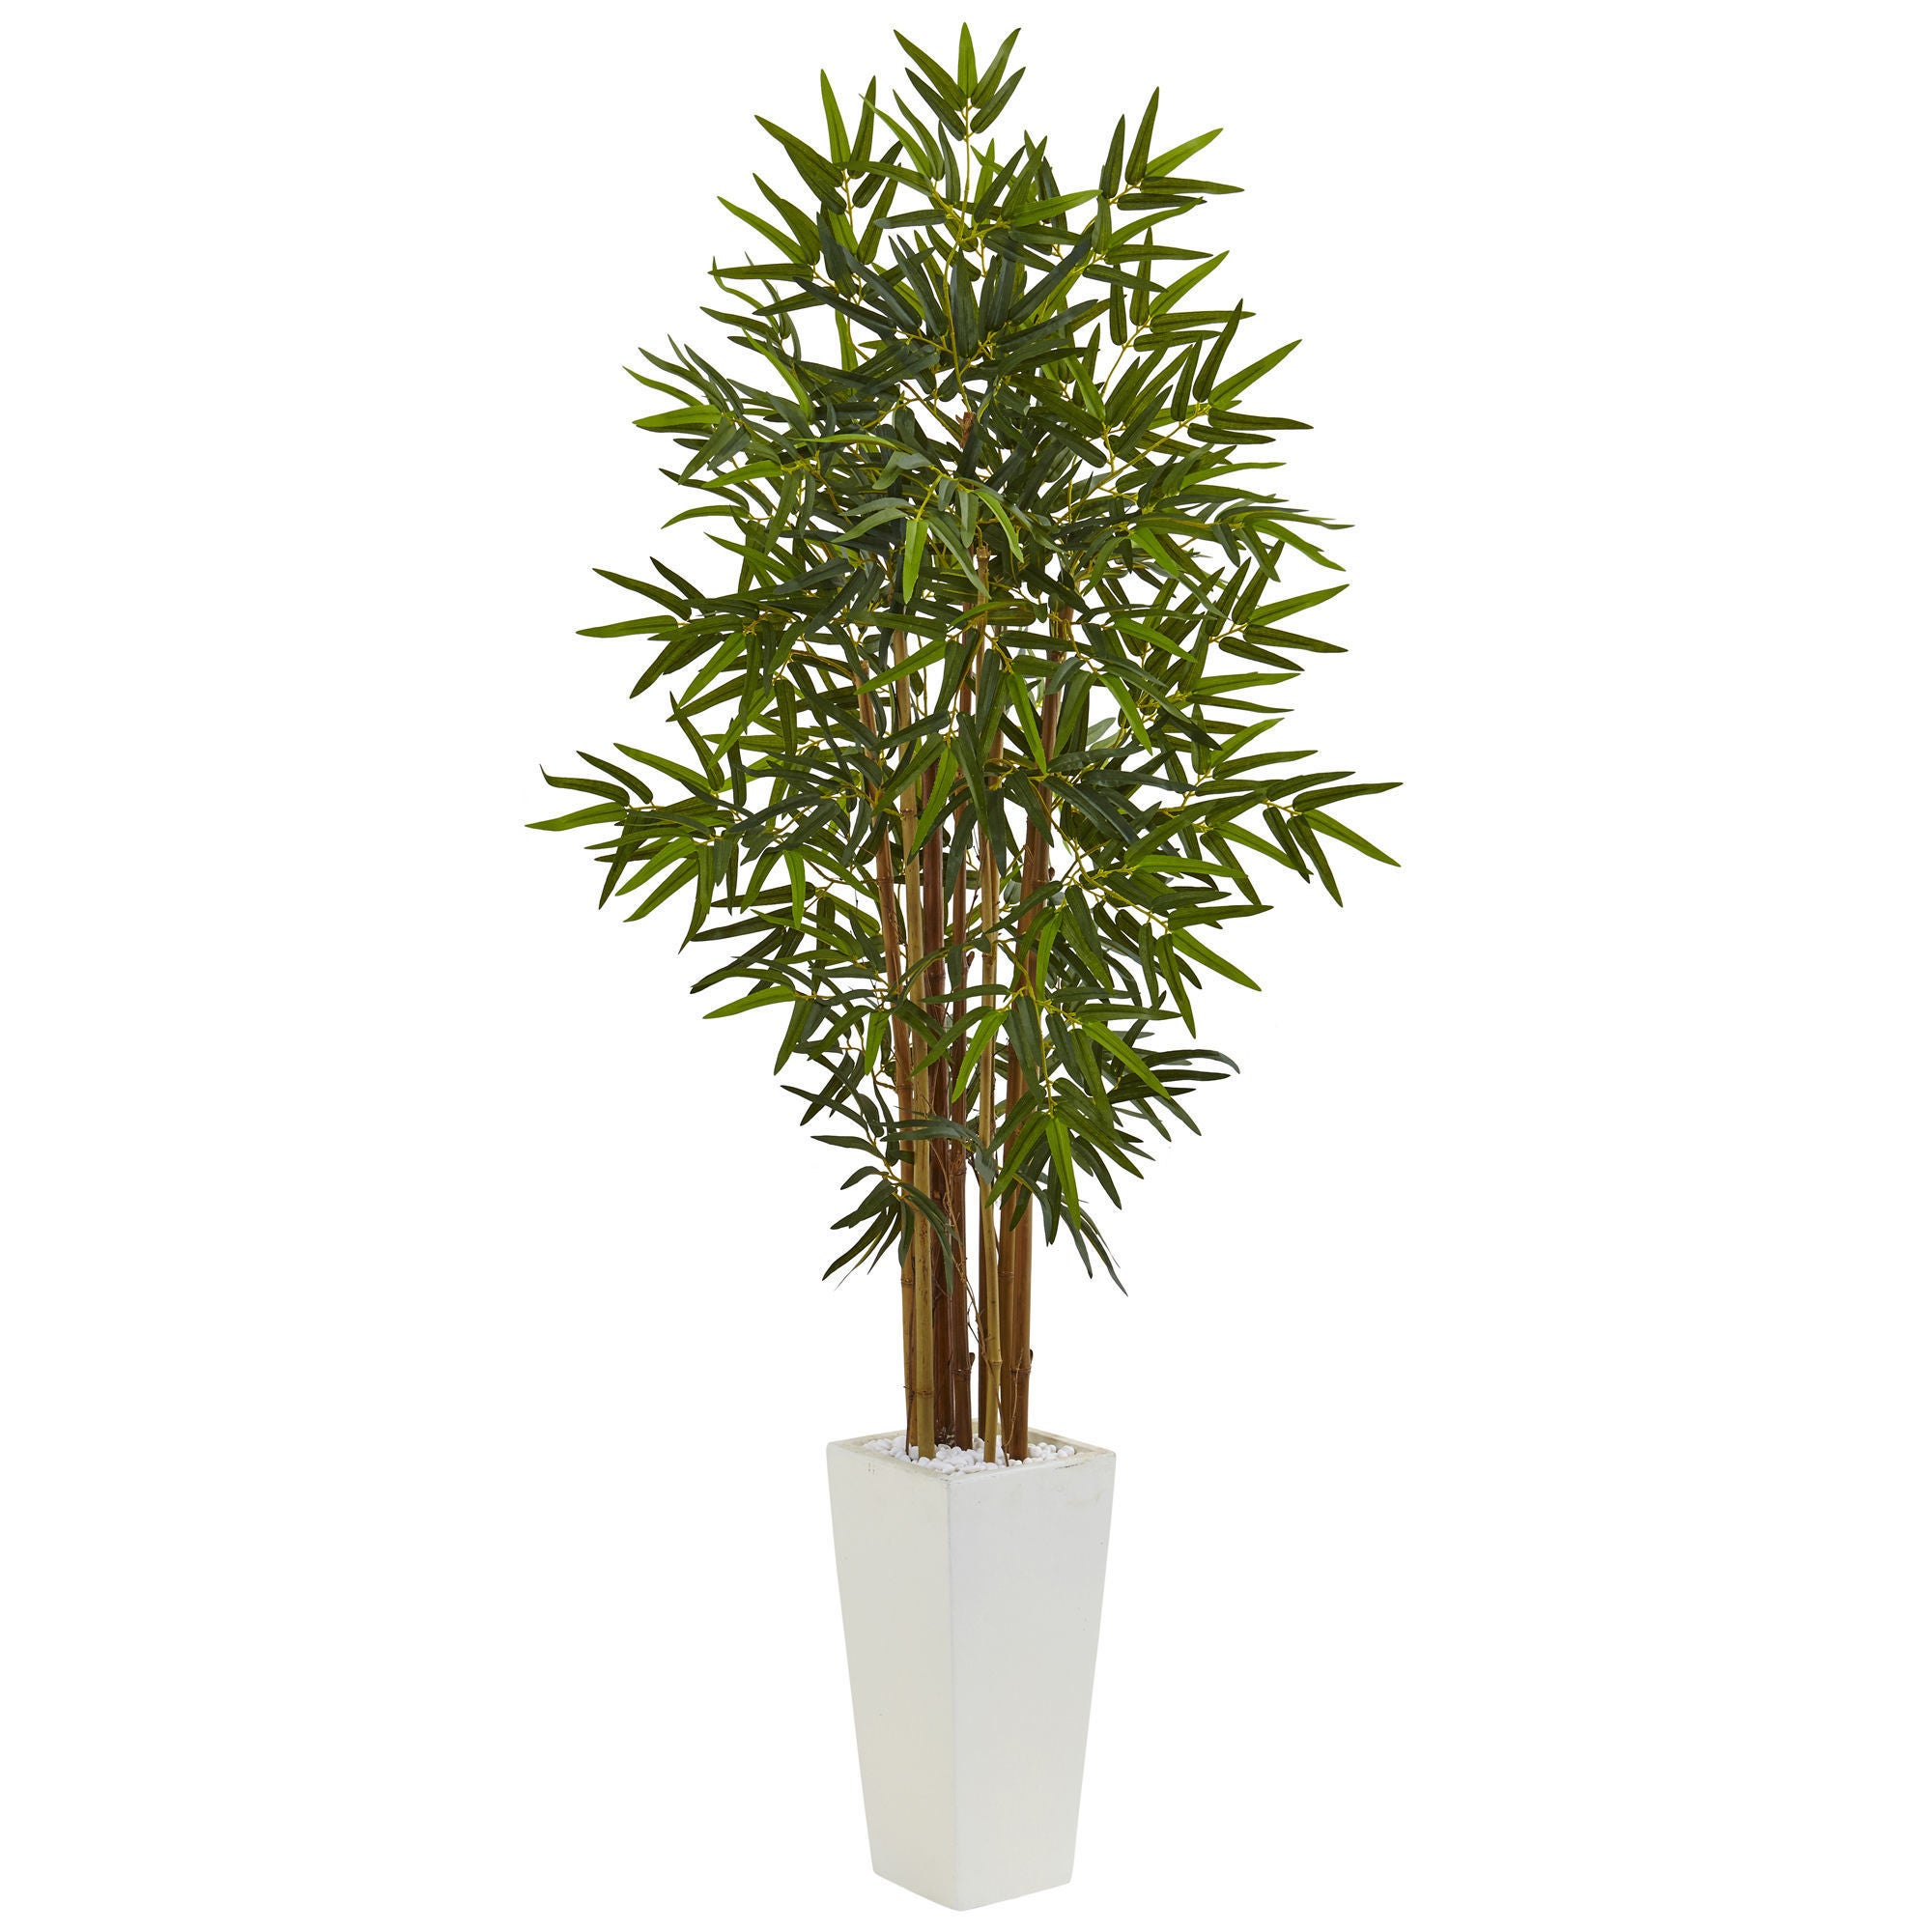 Buy Artificial Plants Online at Overstock | Our Best Decorative